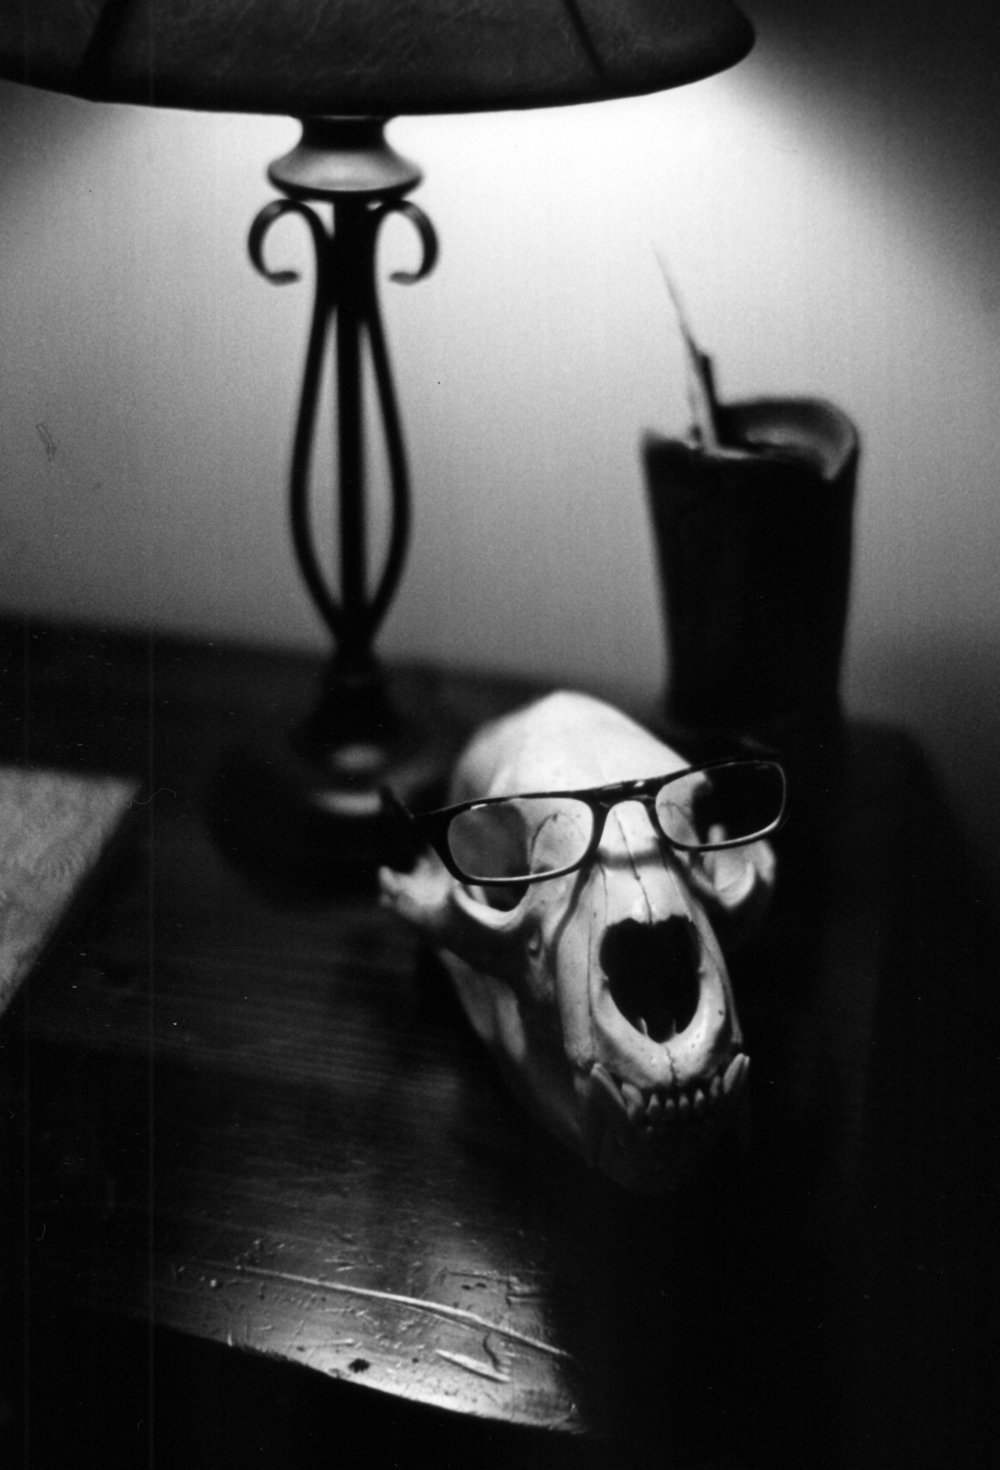 Mike's glasses rest on a bear skull.